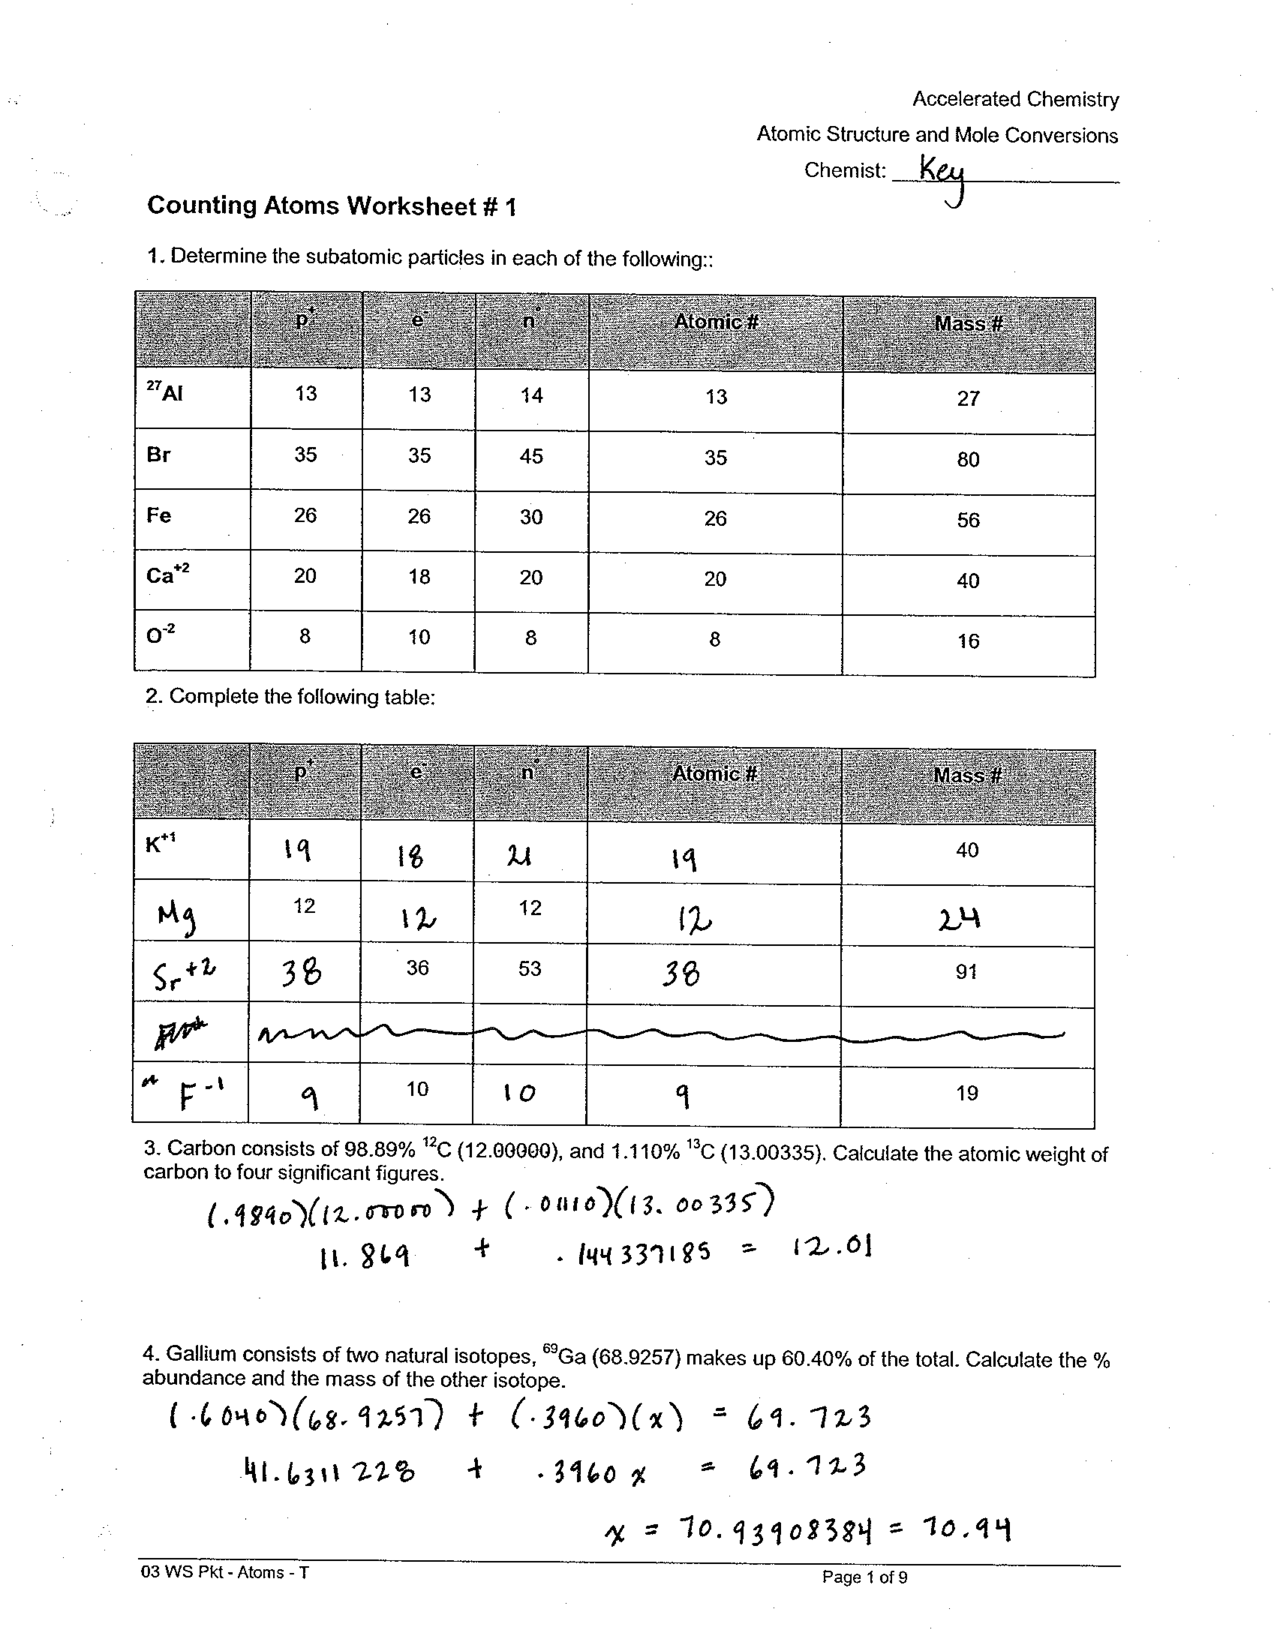 7 1 Ions Worksheet Answers